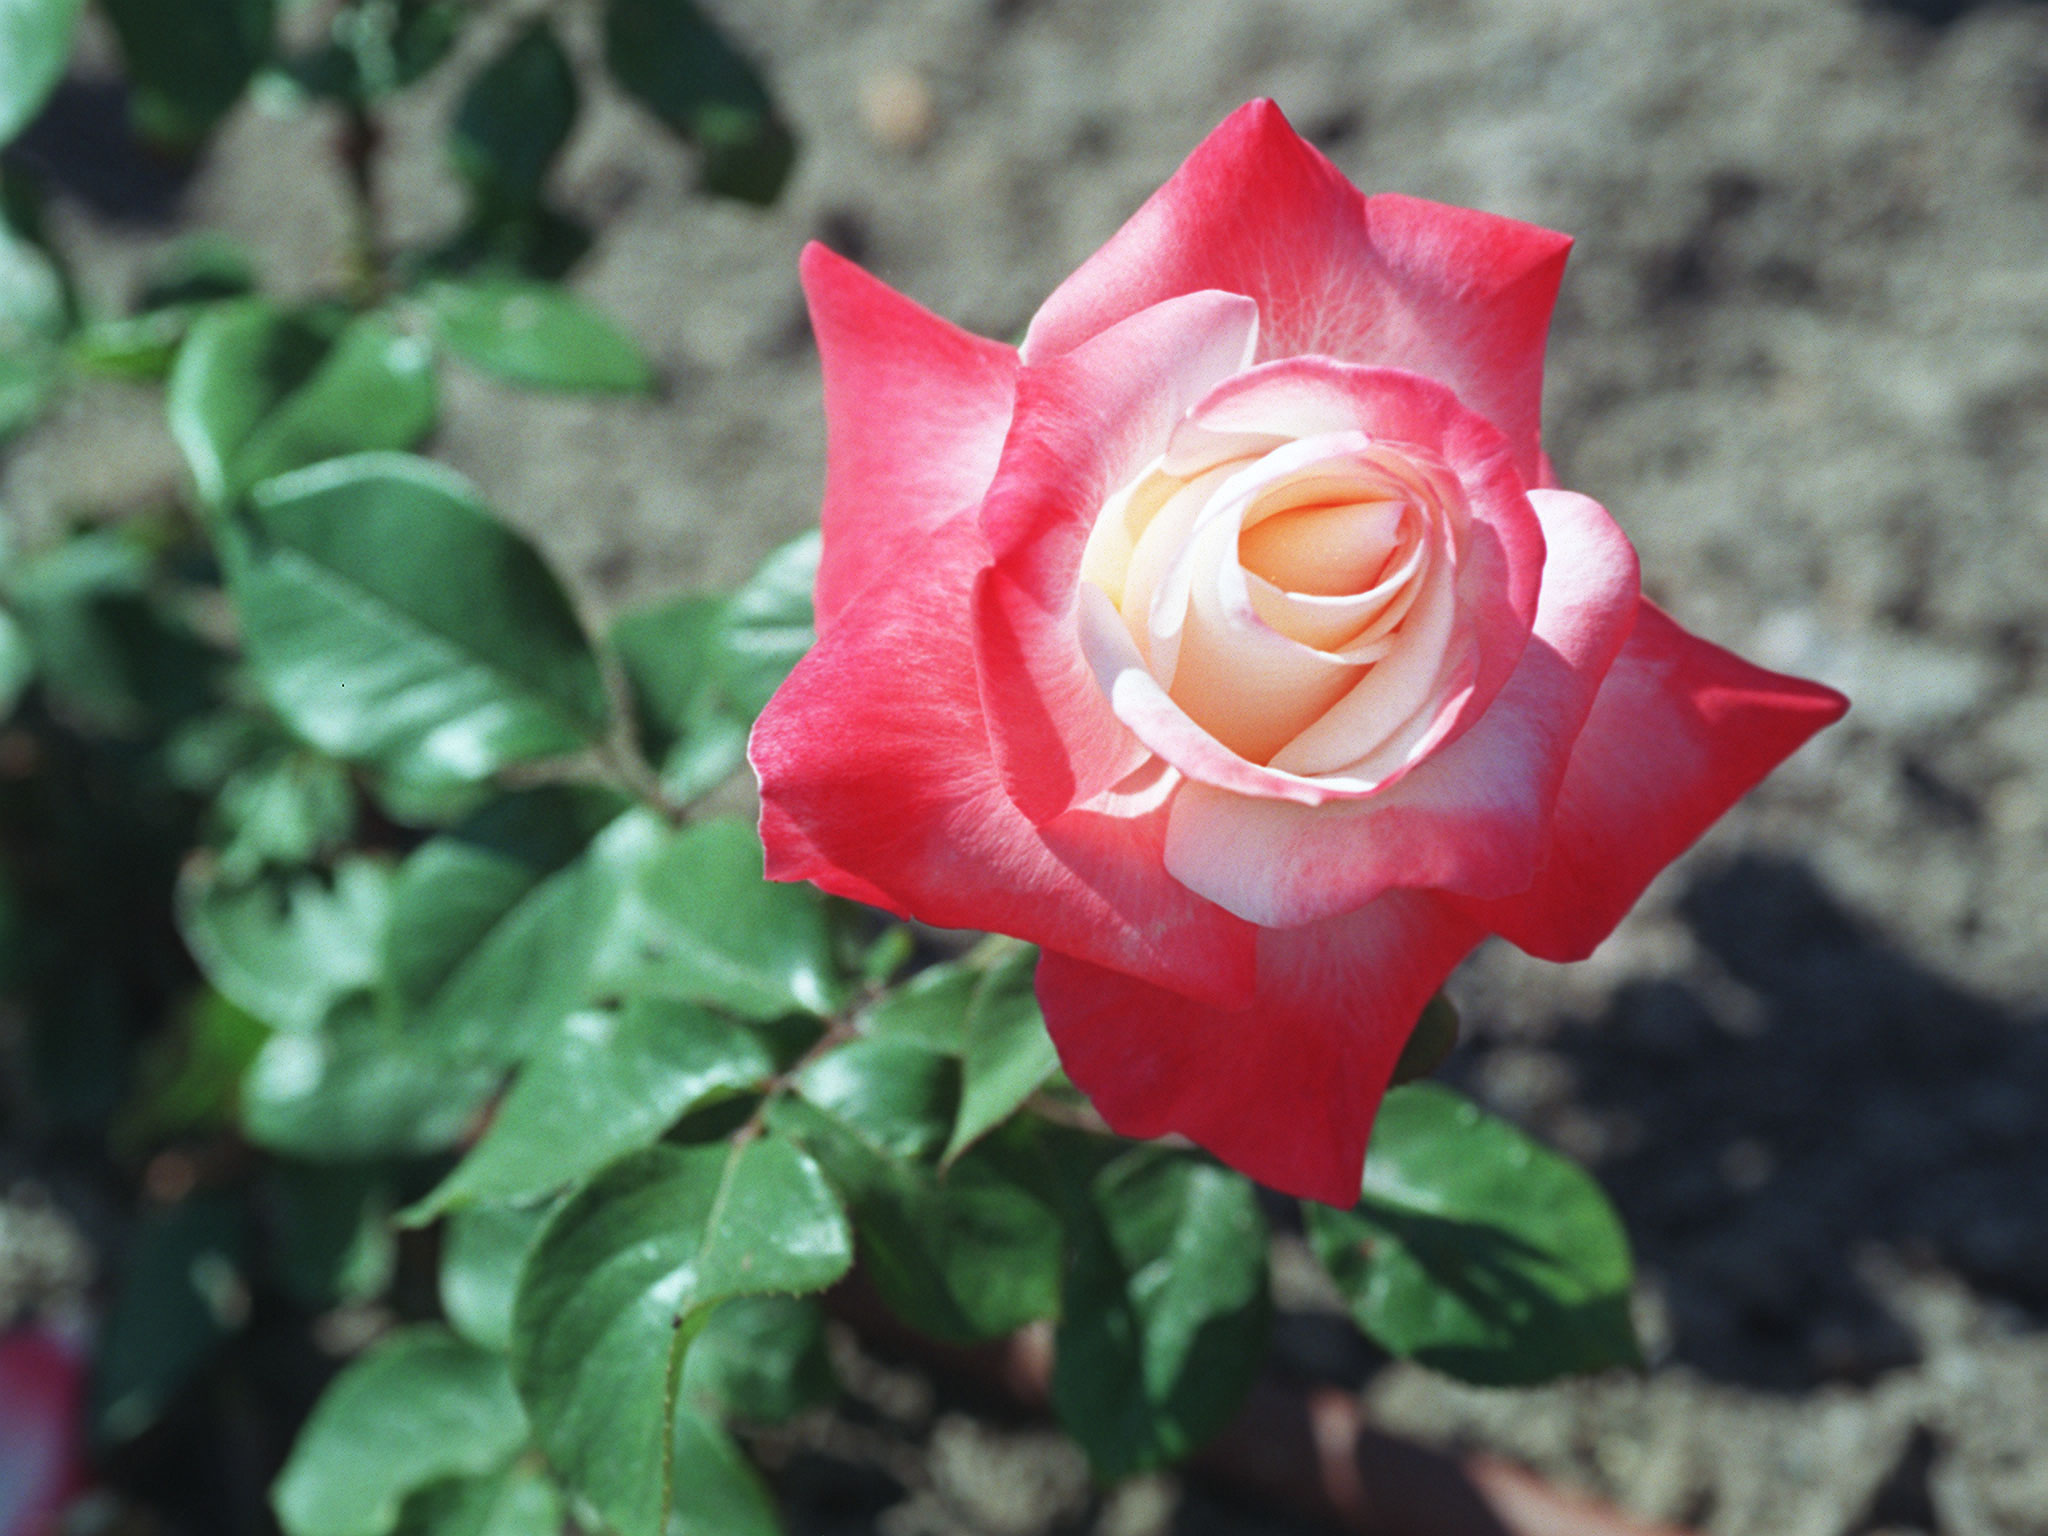 Roses will be the topic at the April 26 meeting of the Amherst Garden Club. (News file photo/Sharon Cantillon)